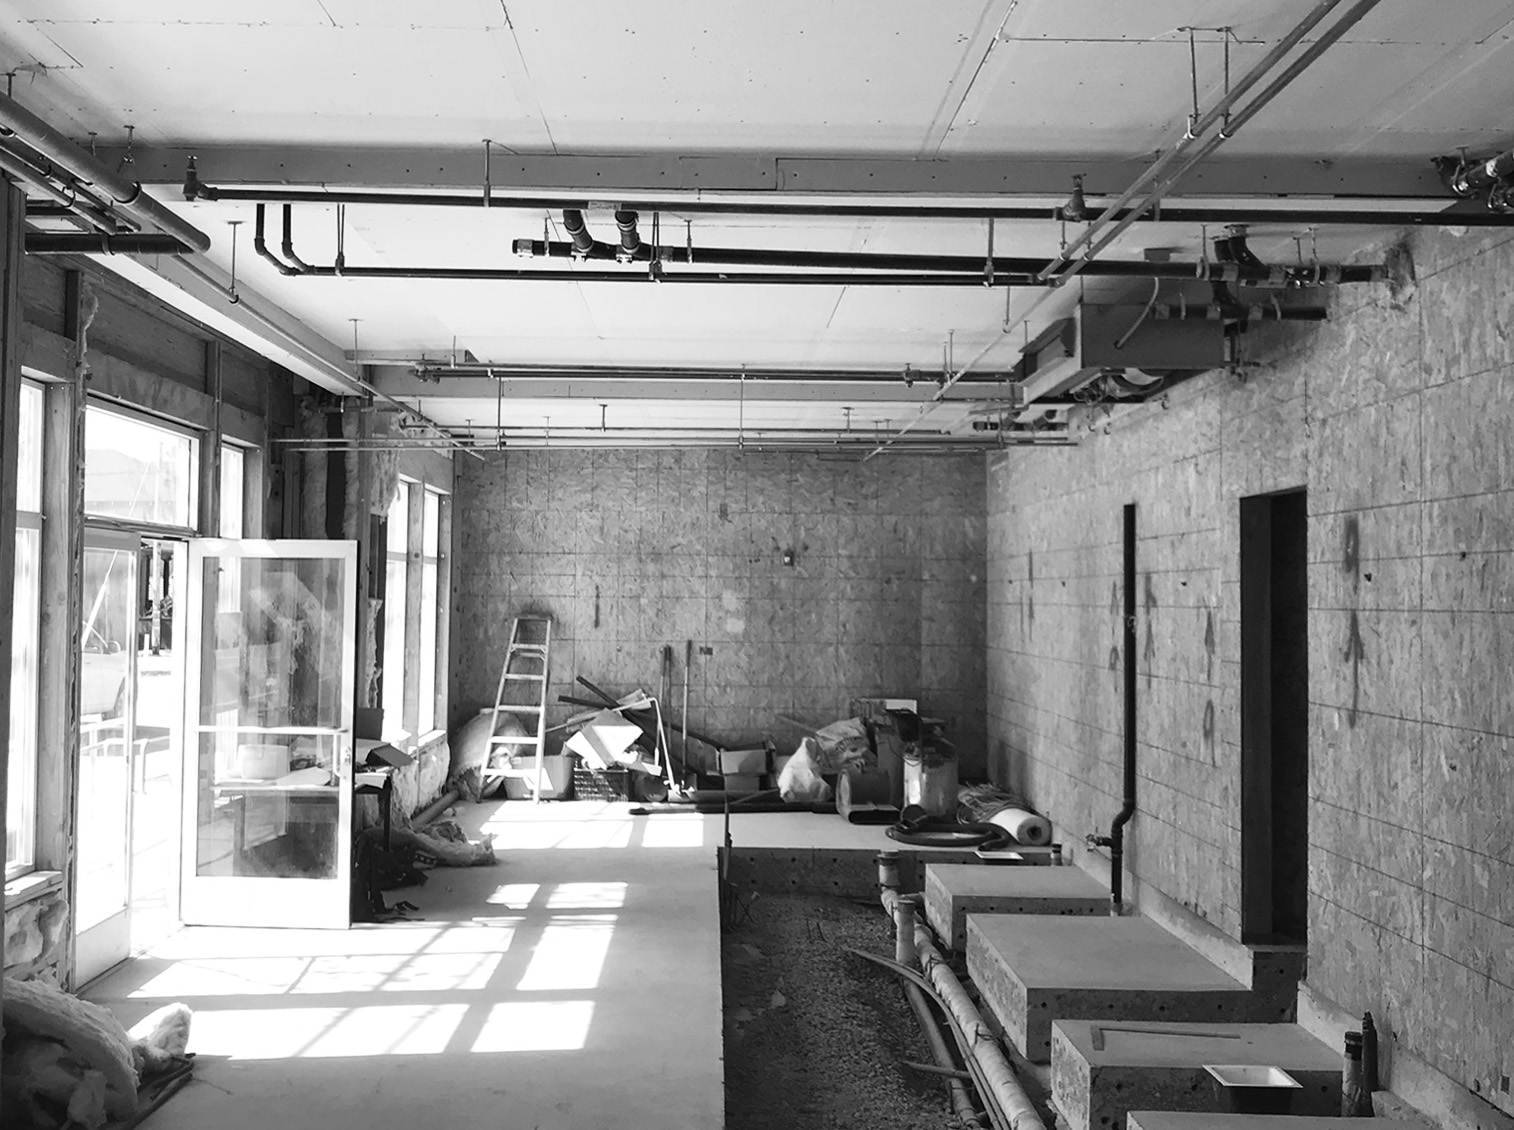 18012_02 FWF Under Construction 2_bw.jpg